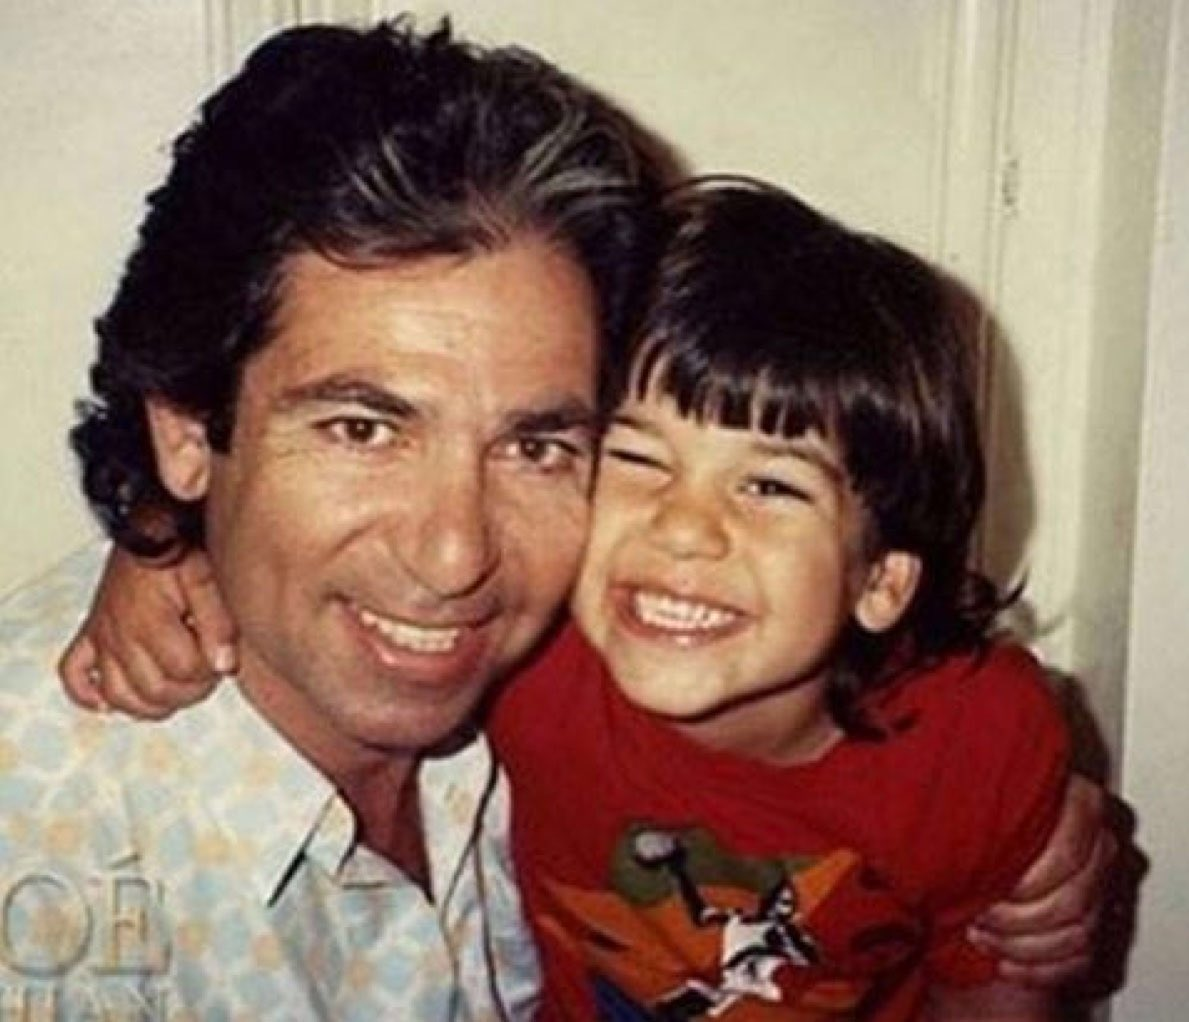 My family has partnered with my Armenian brother @esrailian & @uclahealth to honor my father with the UCLA Robert G. Kardashian Center for Esophageal Health. Follow them & visit https://t.co/7TXyRSQe9U to learn more during #esophagealcancerawarenessmonth https://t.co/F0aTglanm0